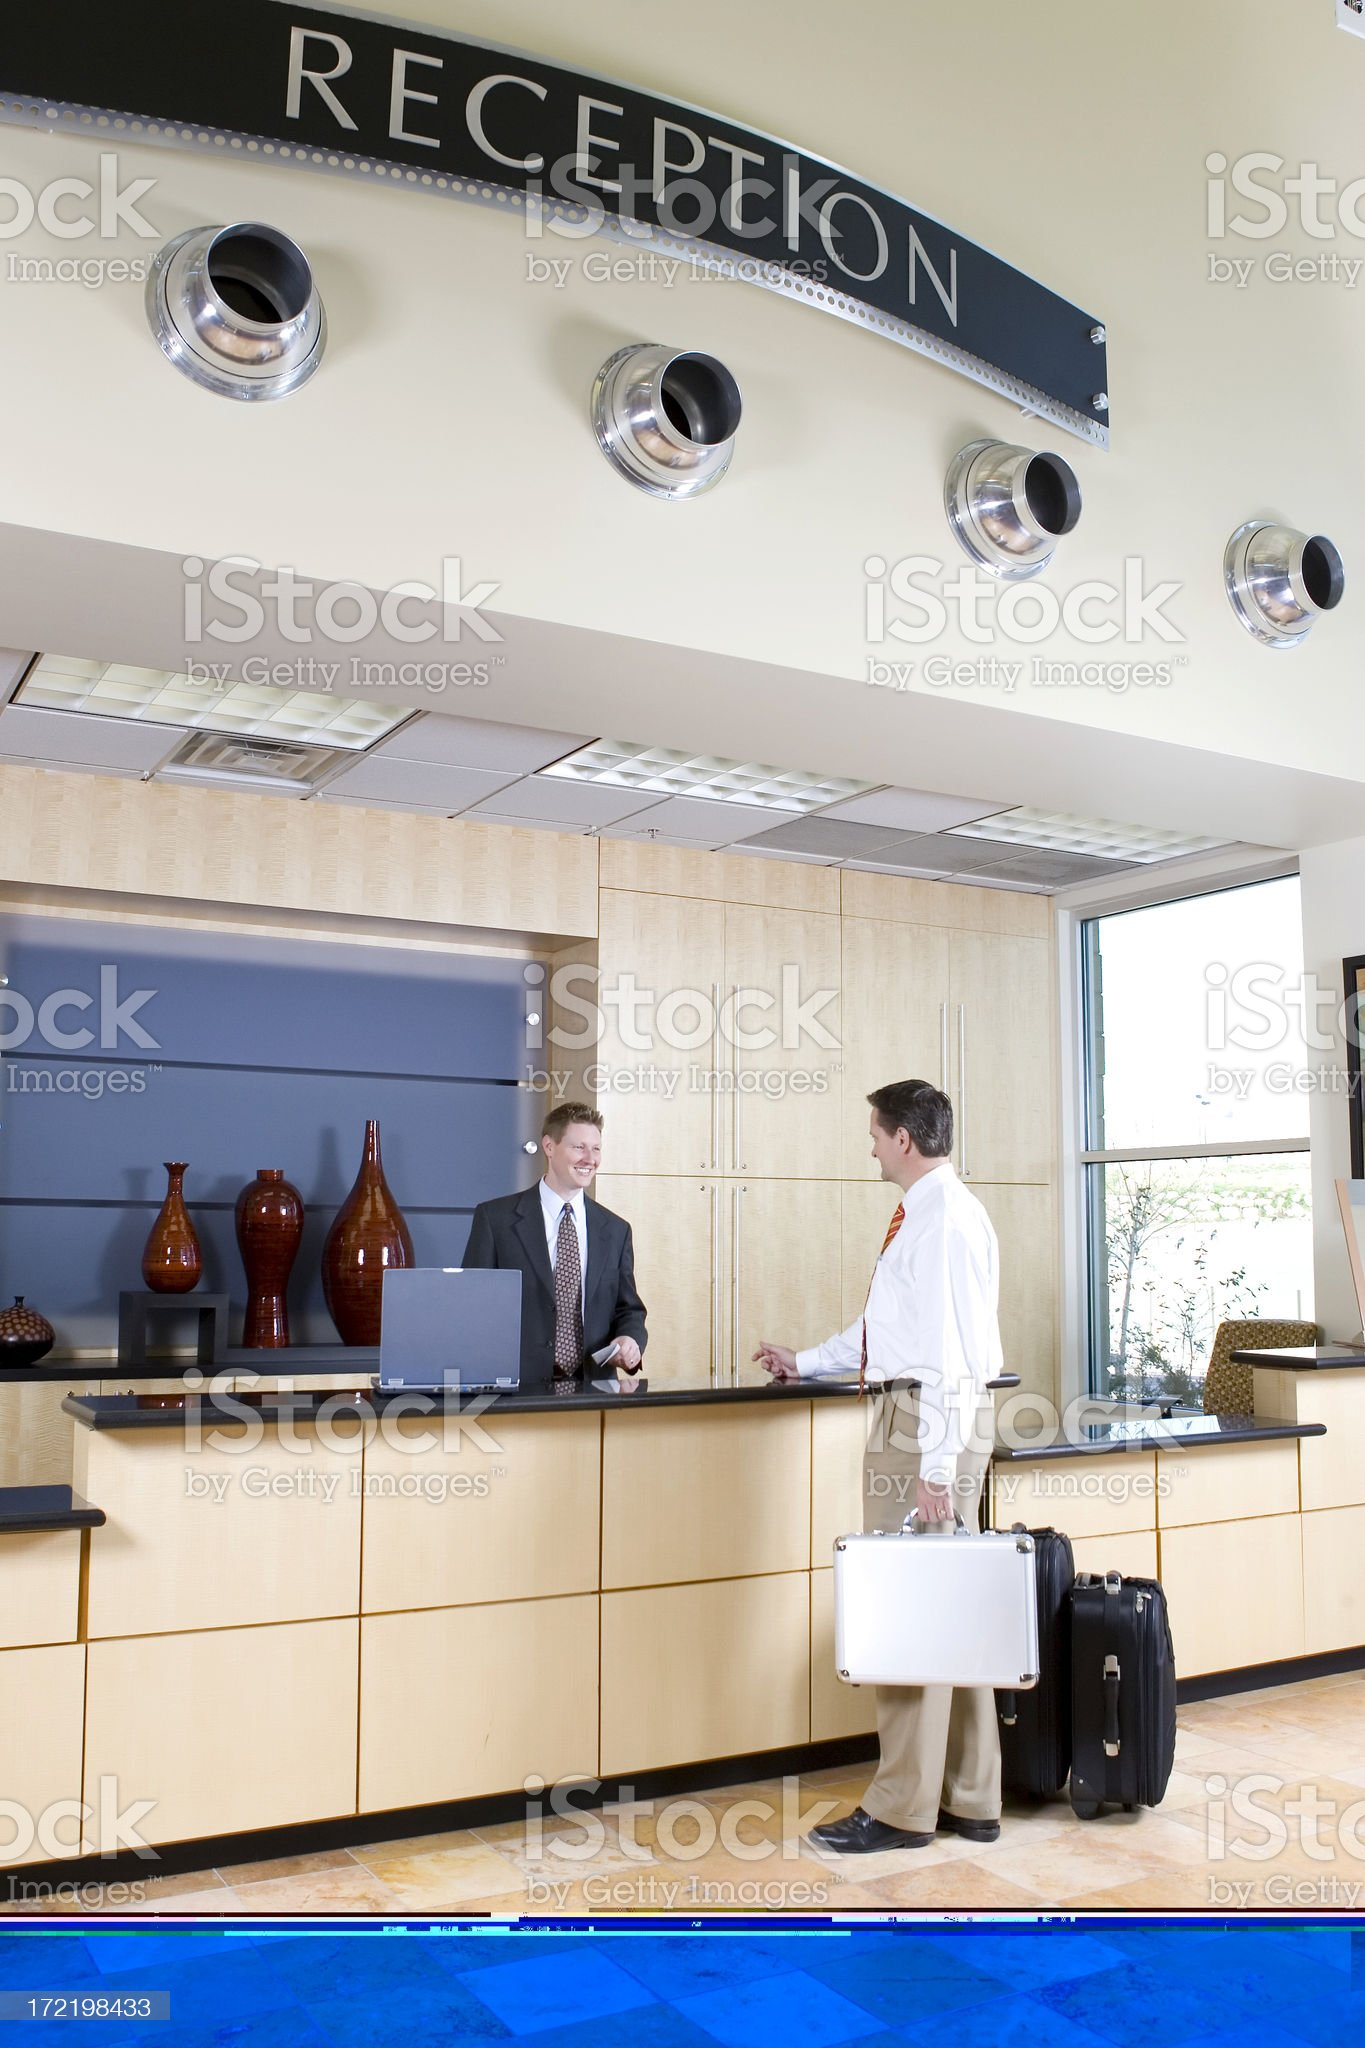 Businessman Checking in at the Reception Desk royalty-free stock photo